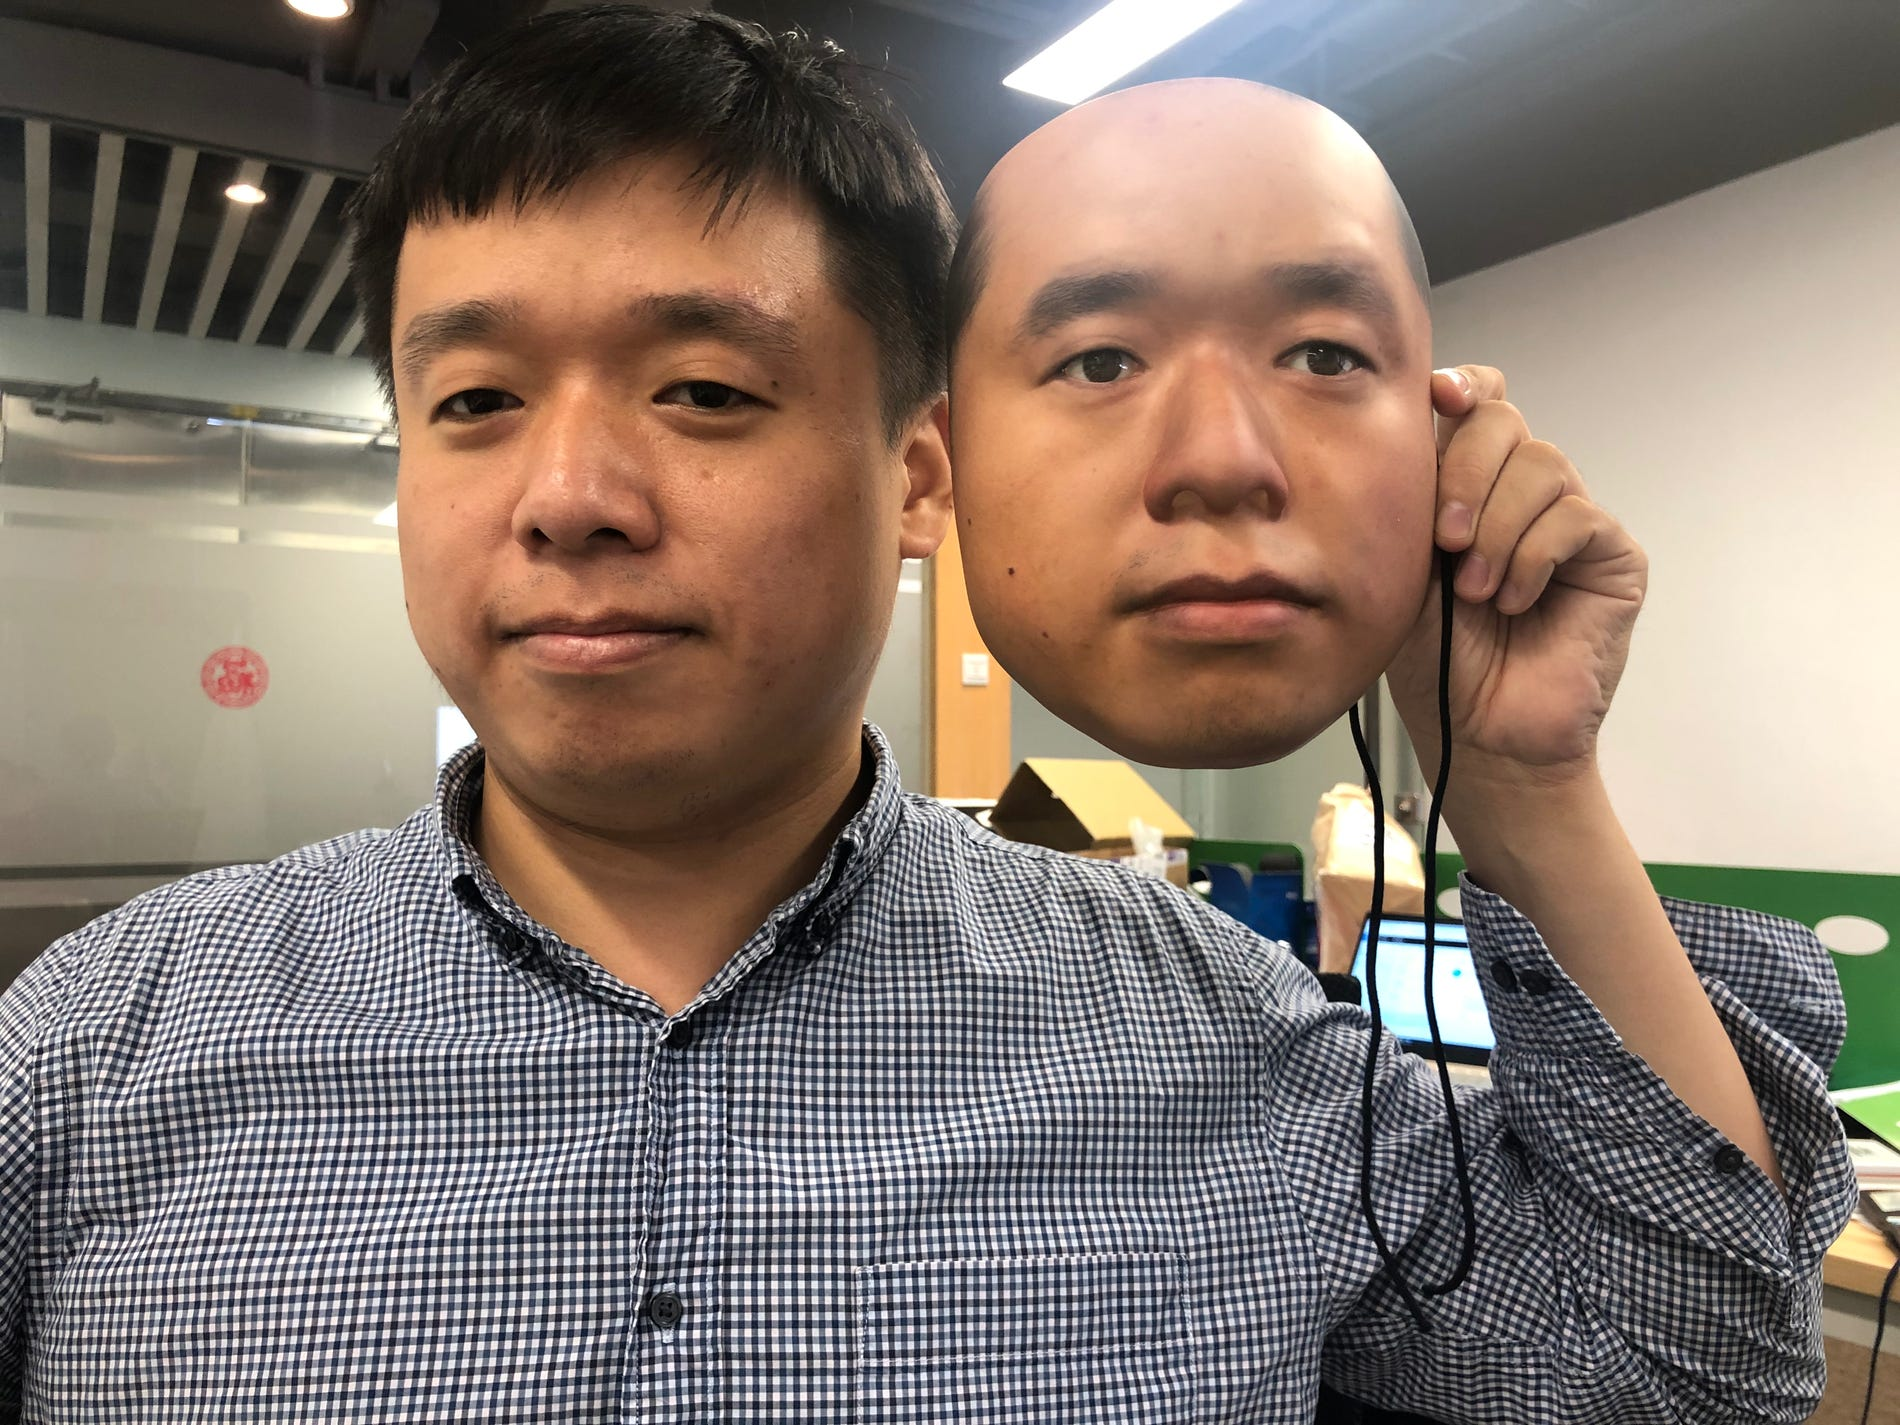 Researchers fool facial recognition software with mask